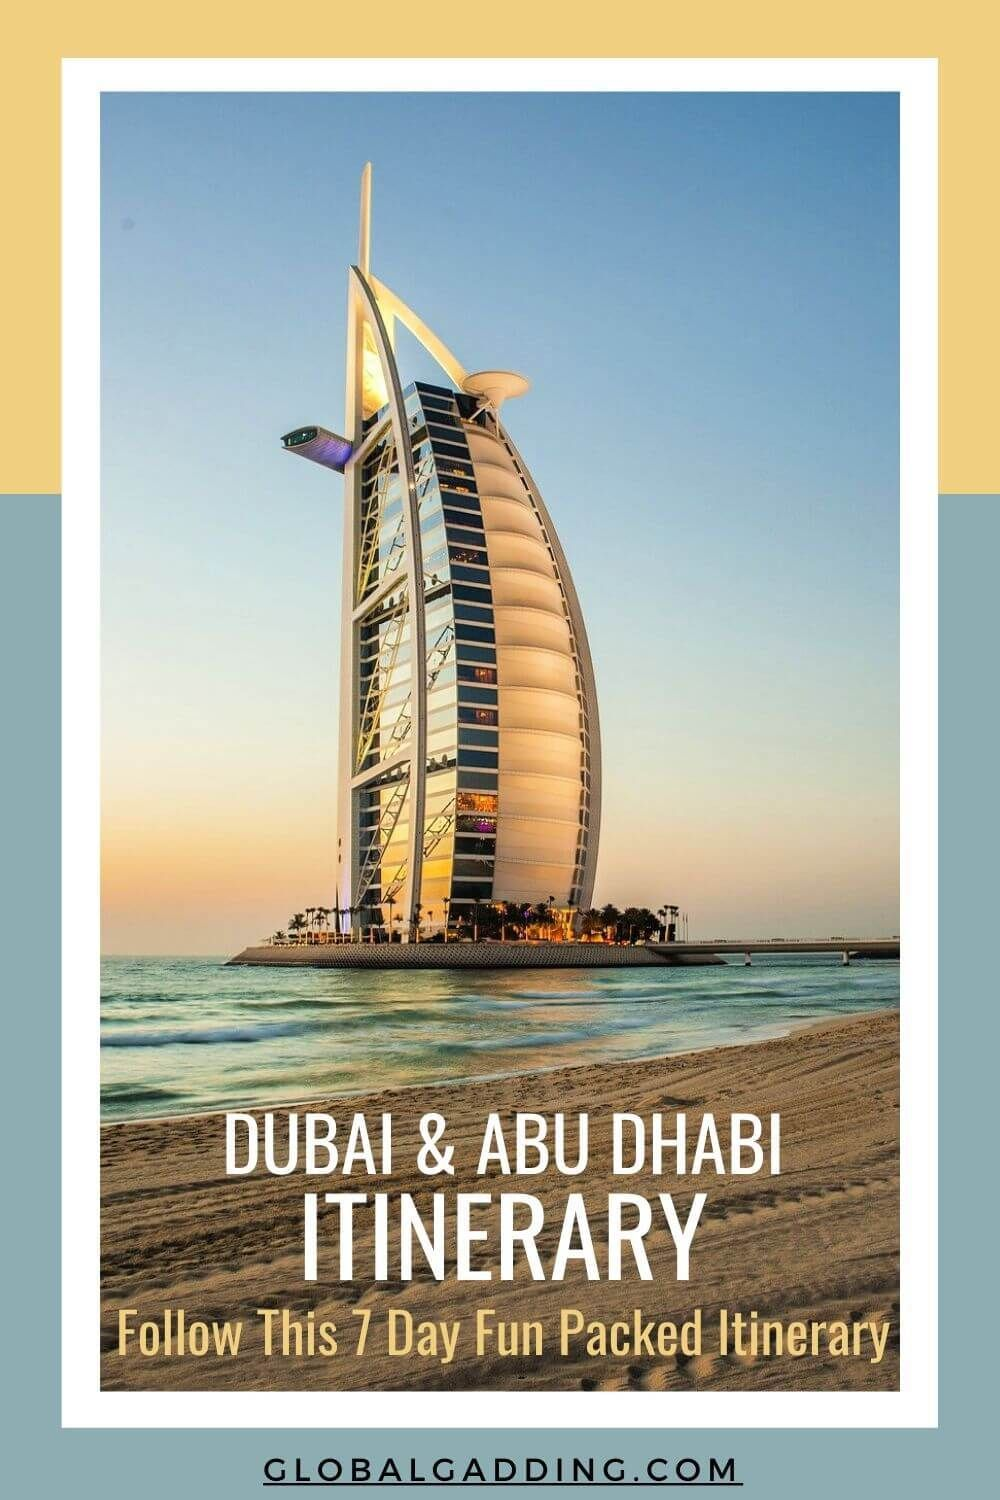 A fun packed Dubai and Abu Dhabi 7 day Itinerary. Some of the best things to do in UAE. Mosques, best architecture, luxury hotels and photography opportunities. Easy day by day instructions to follow! #dubai #uae #abudhabi #dubaiitinerary #thingstodoindubai